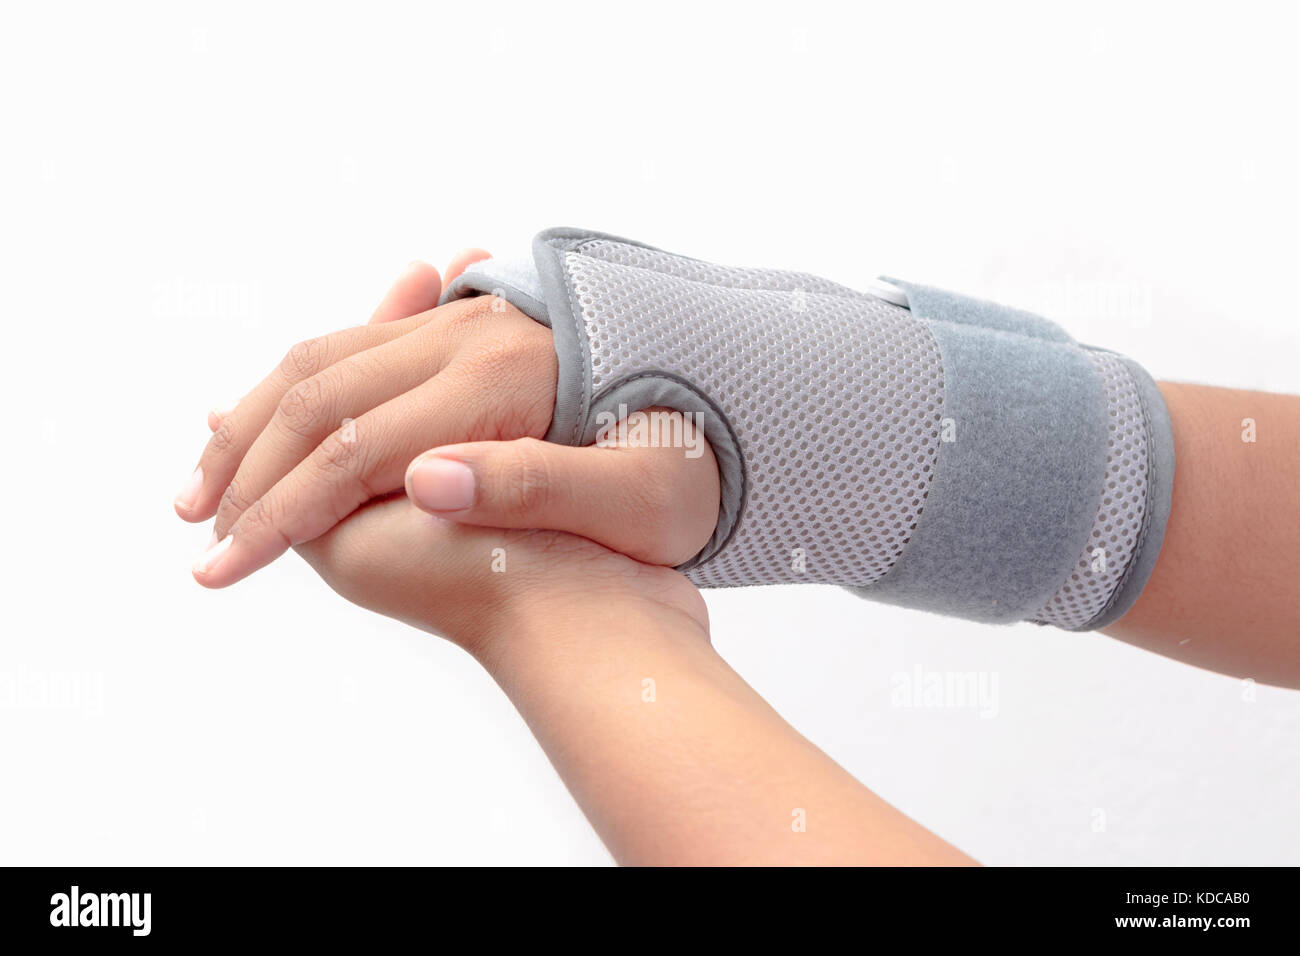 Woman's hand with wrist orthosis on white background - Stock Image